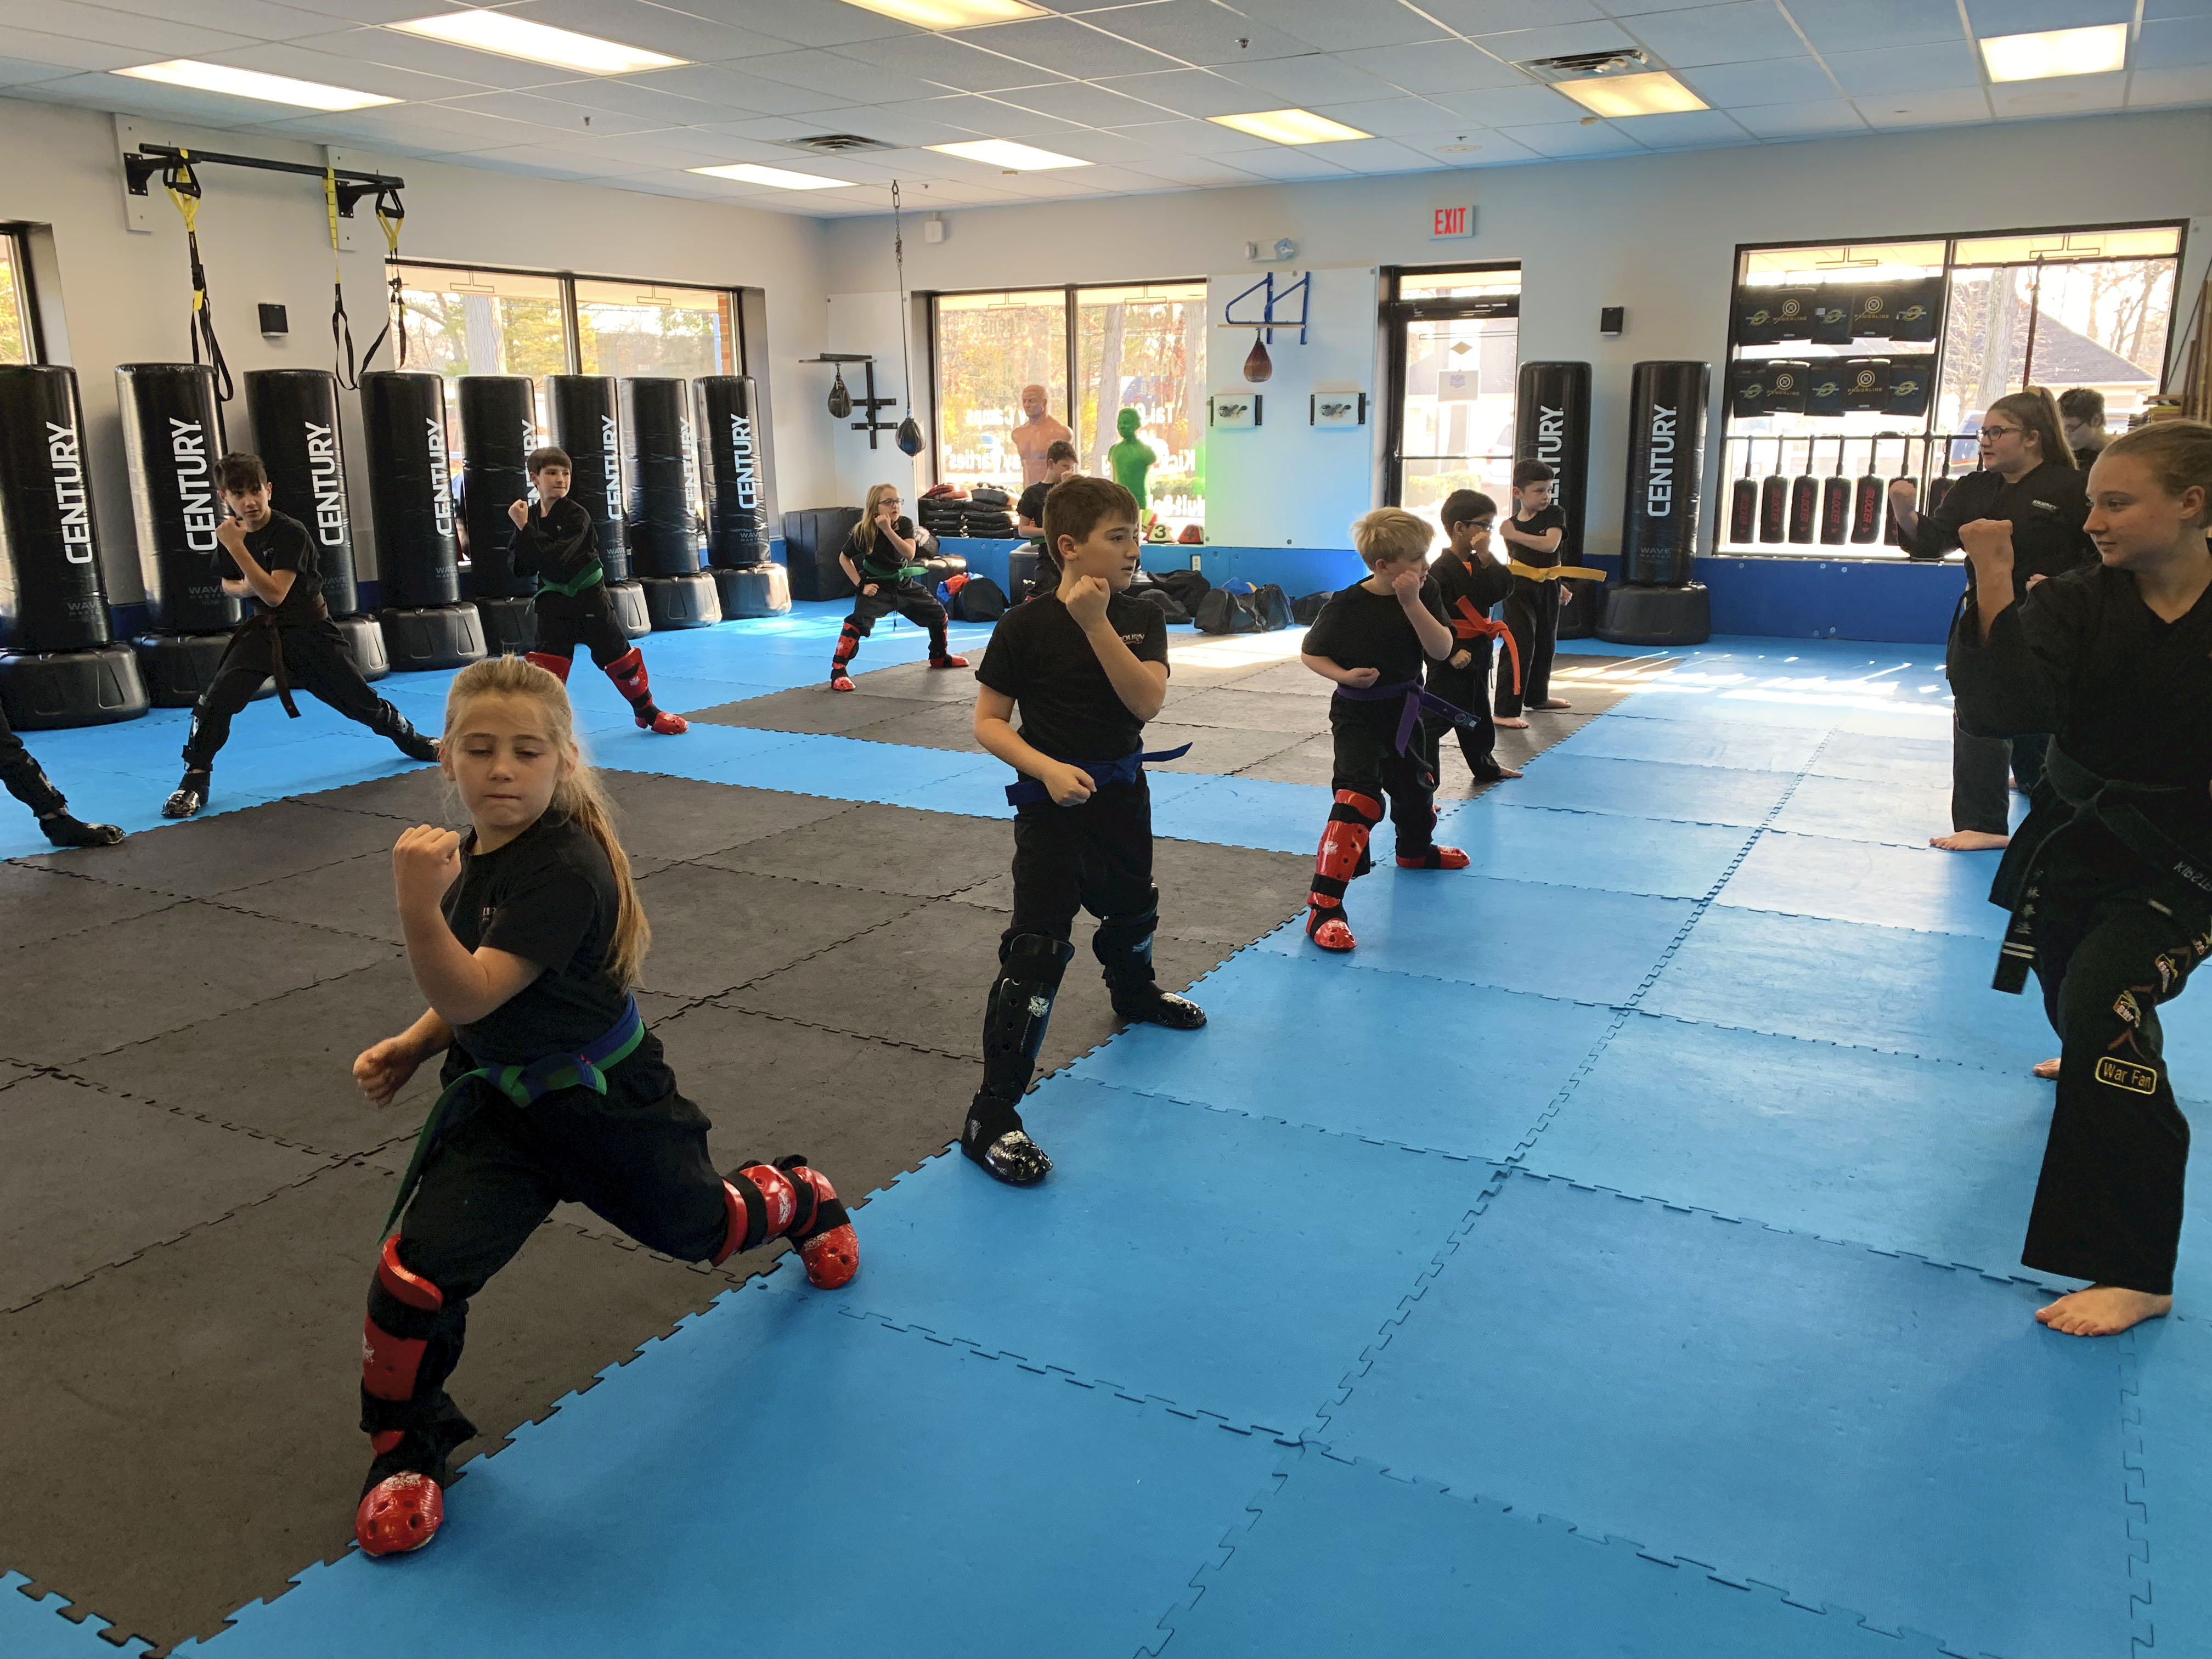 Kempo Karate Martial Arts Kids doing basics